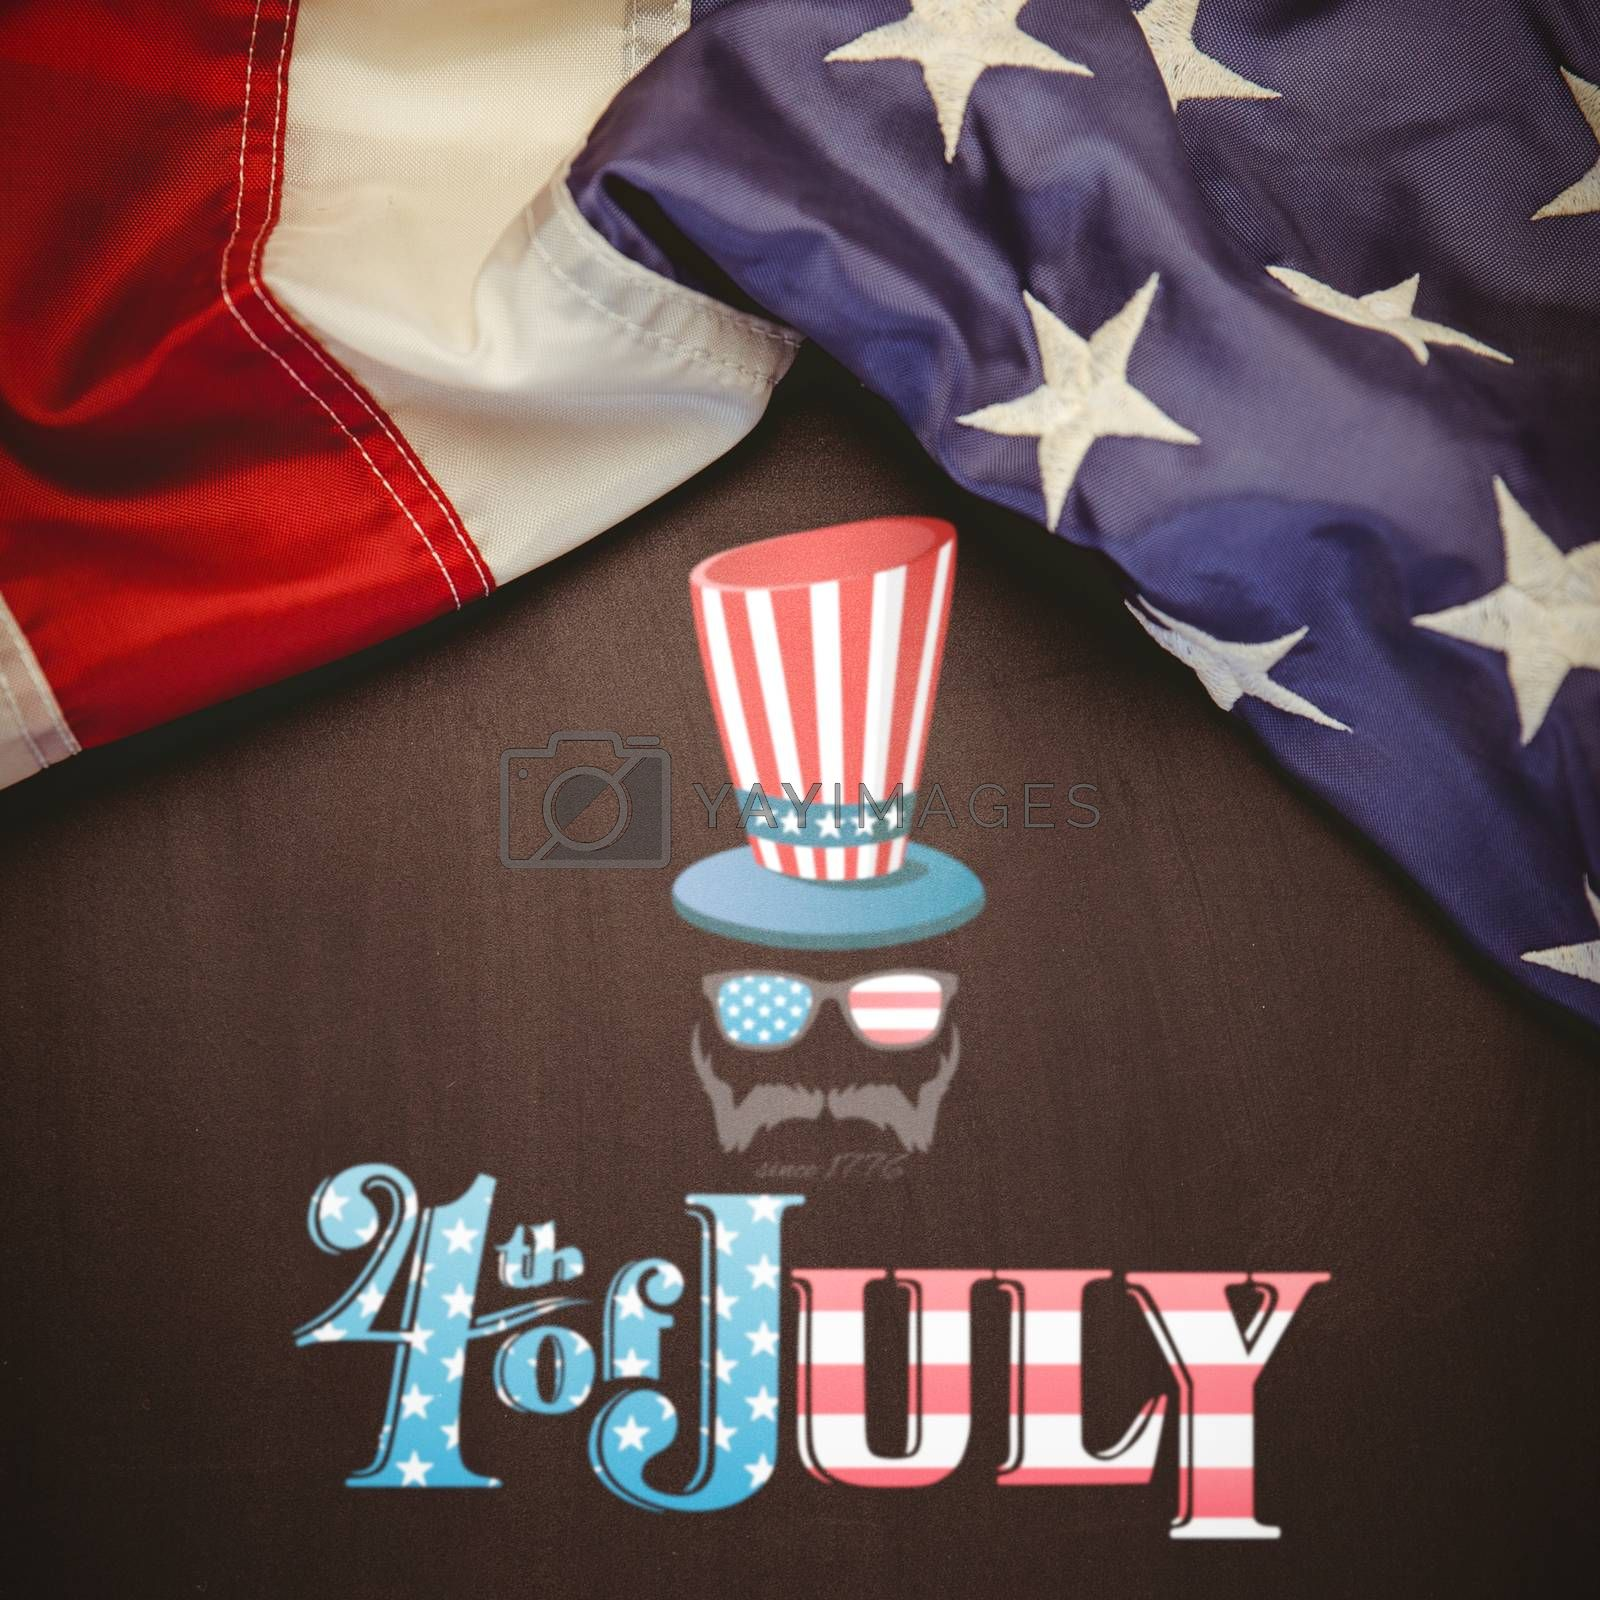 Focus on 4th july against white background with vignette